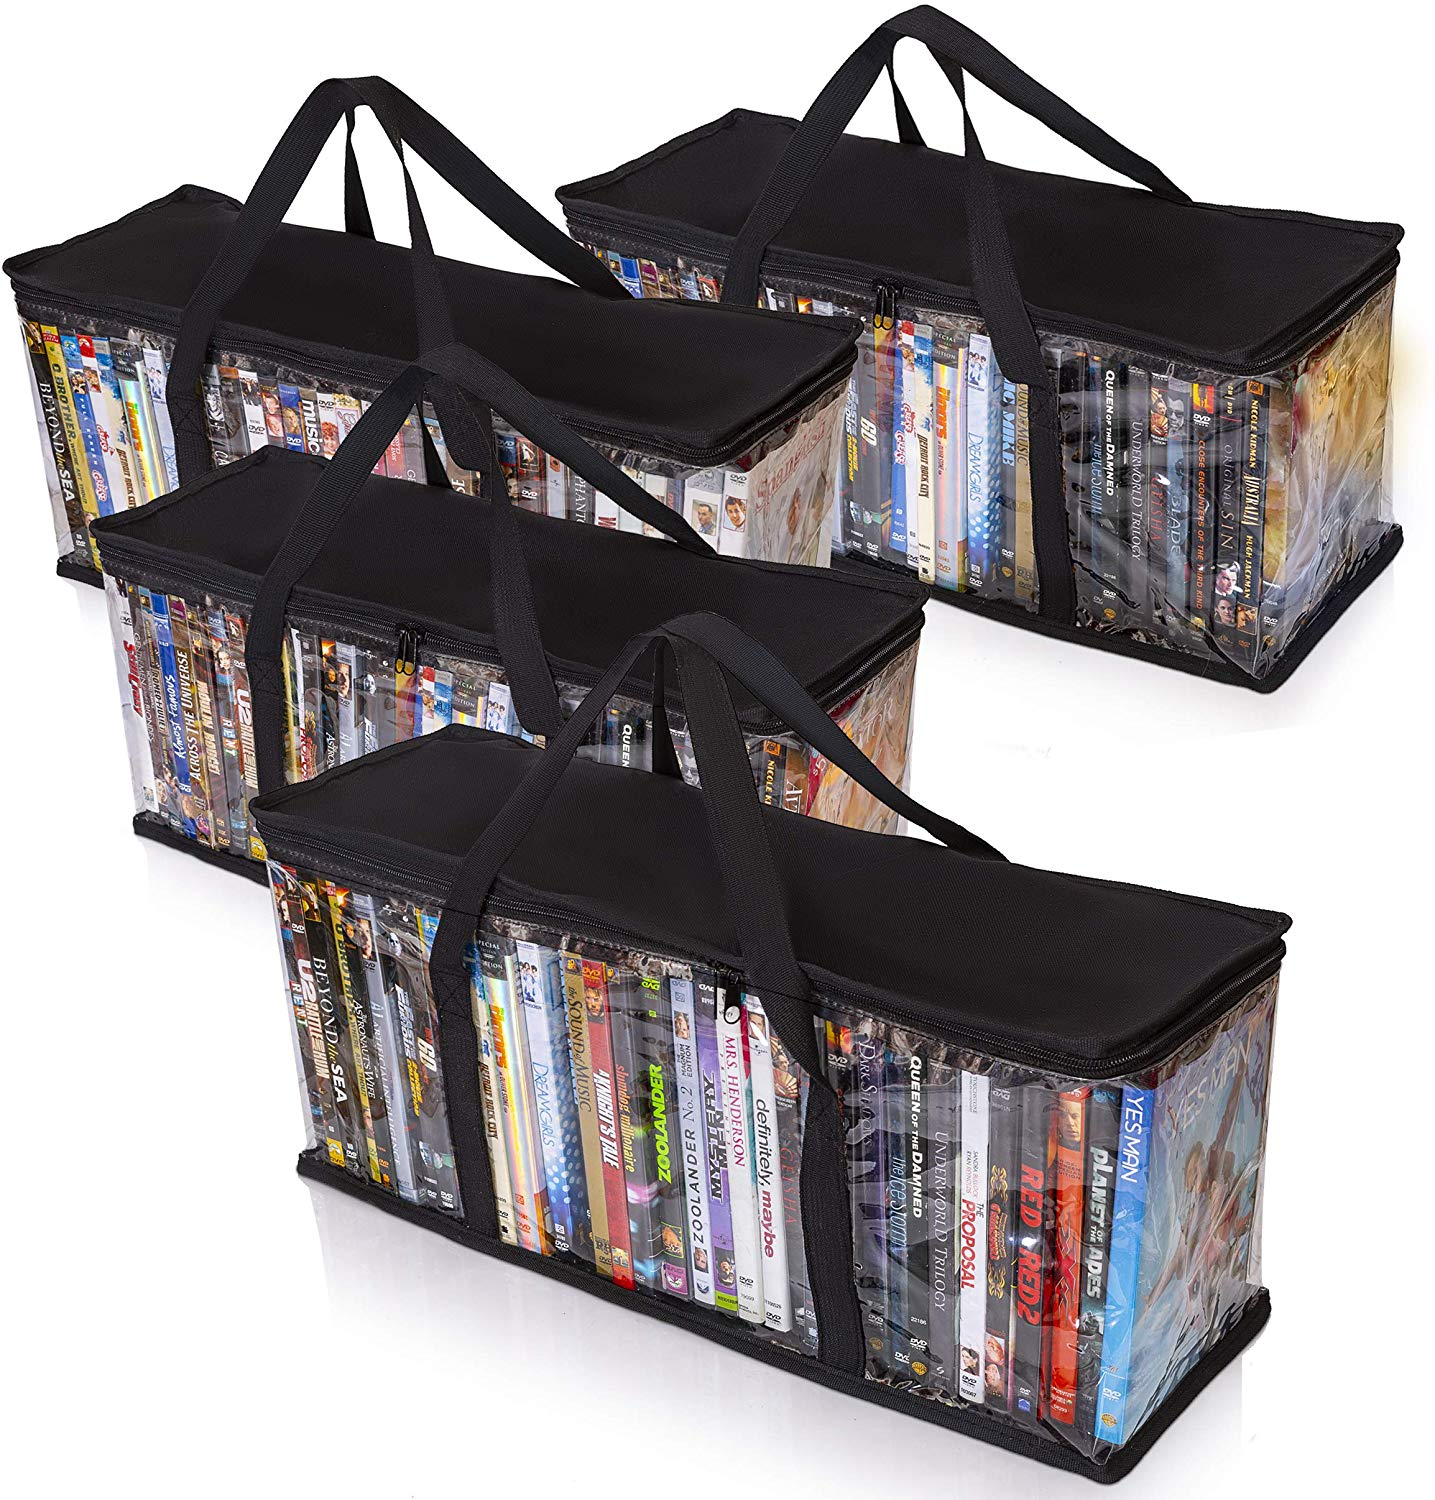 DVD Storage Tote (Set Of 4)